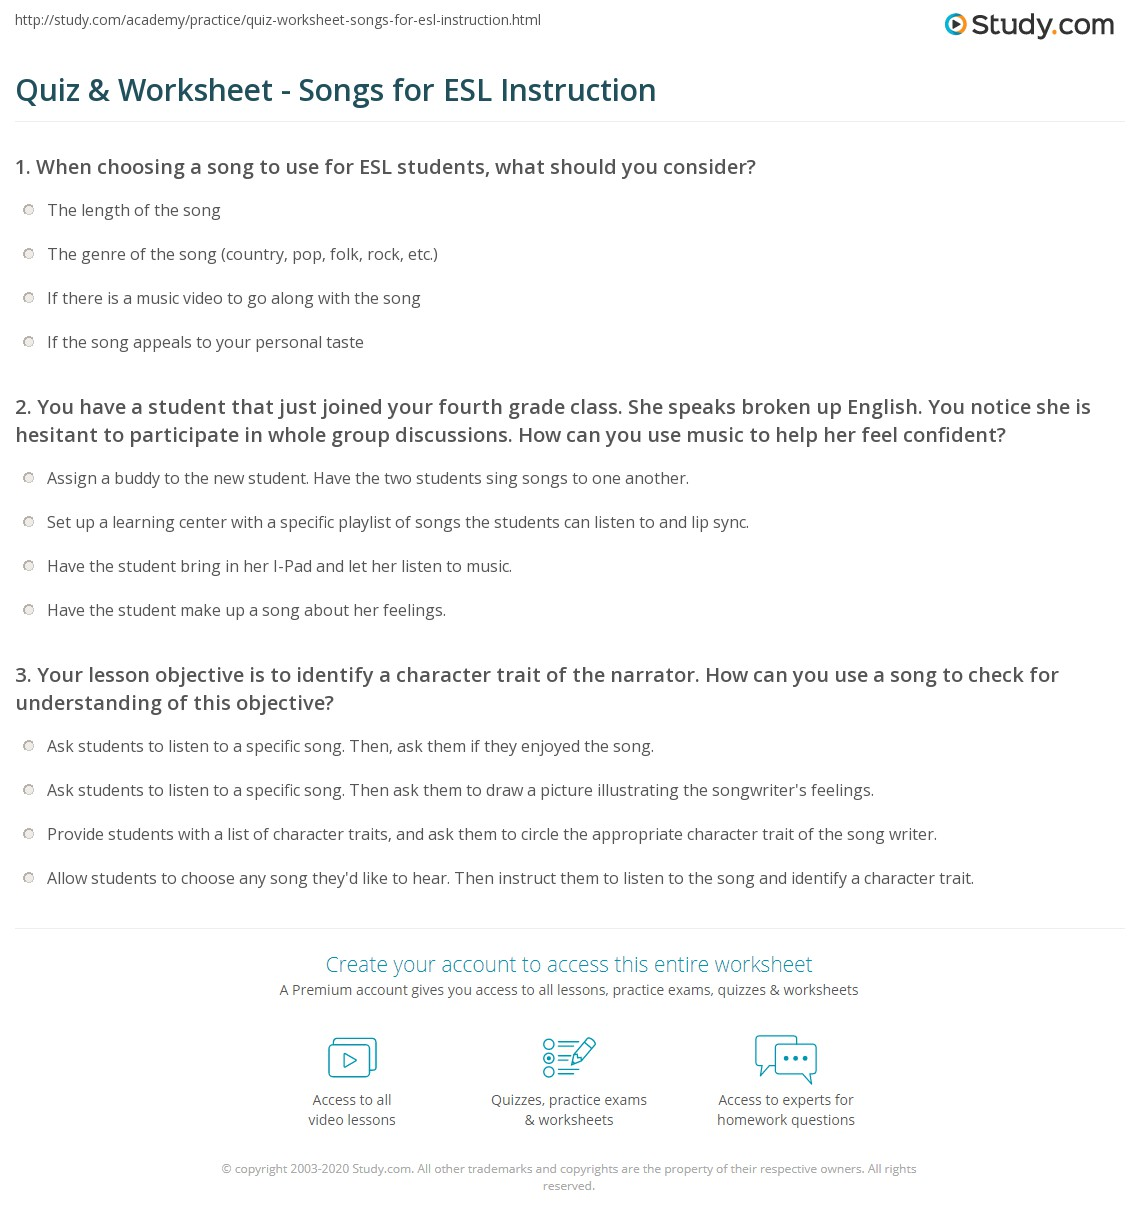 worksheet Esl Personality Worksheet quiz worksheet songs for esl instruction study com 1 you have a student that just joined your fourth grade class she speaks broken up english notice is hesitant to participate in who